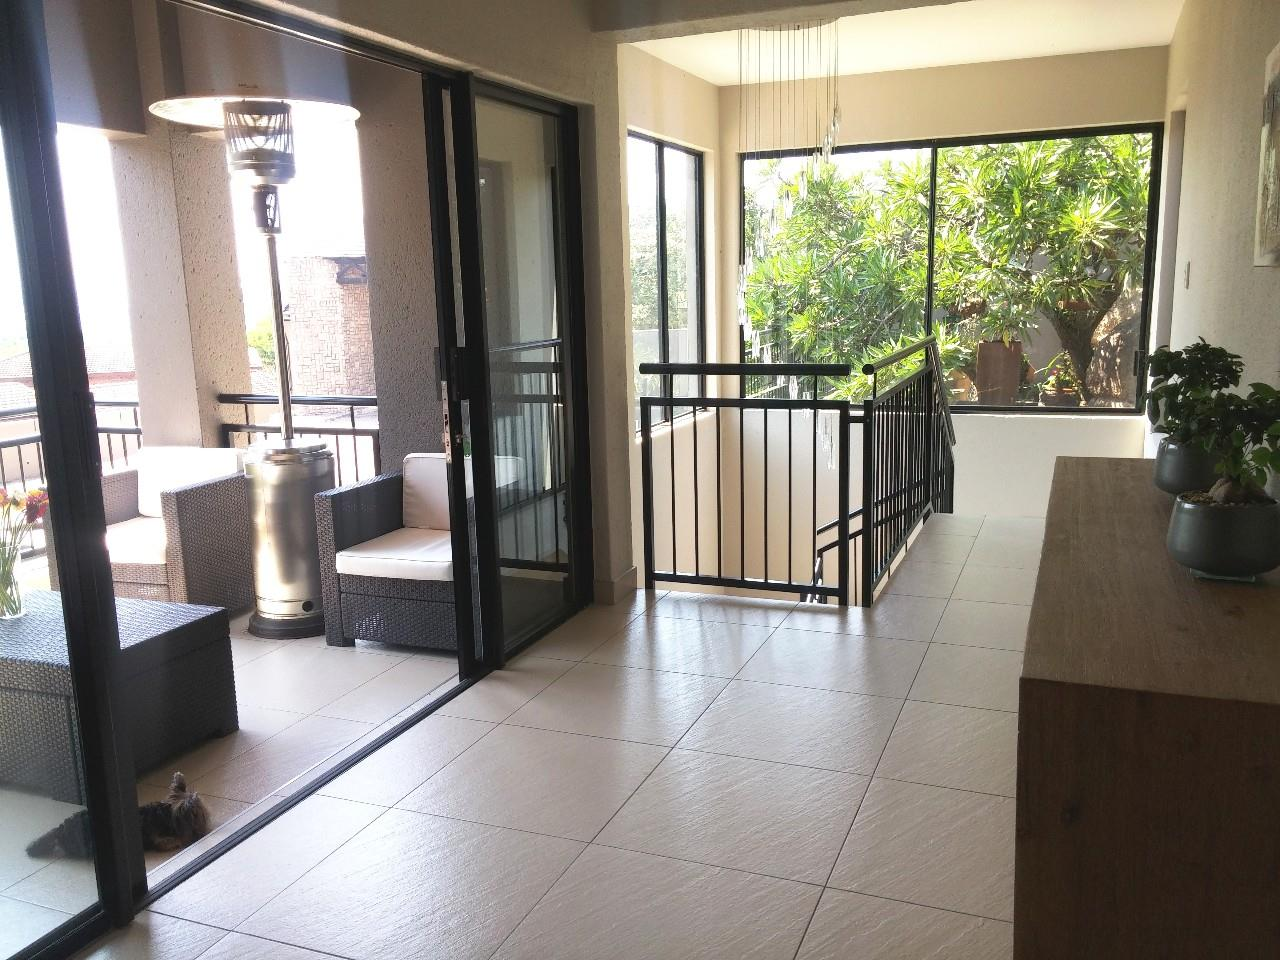 4 Bedroom House For Sale in Nelspruit Central